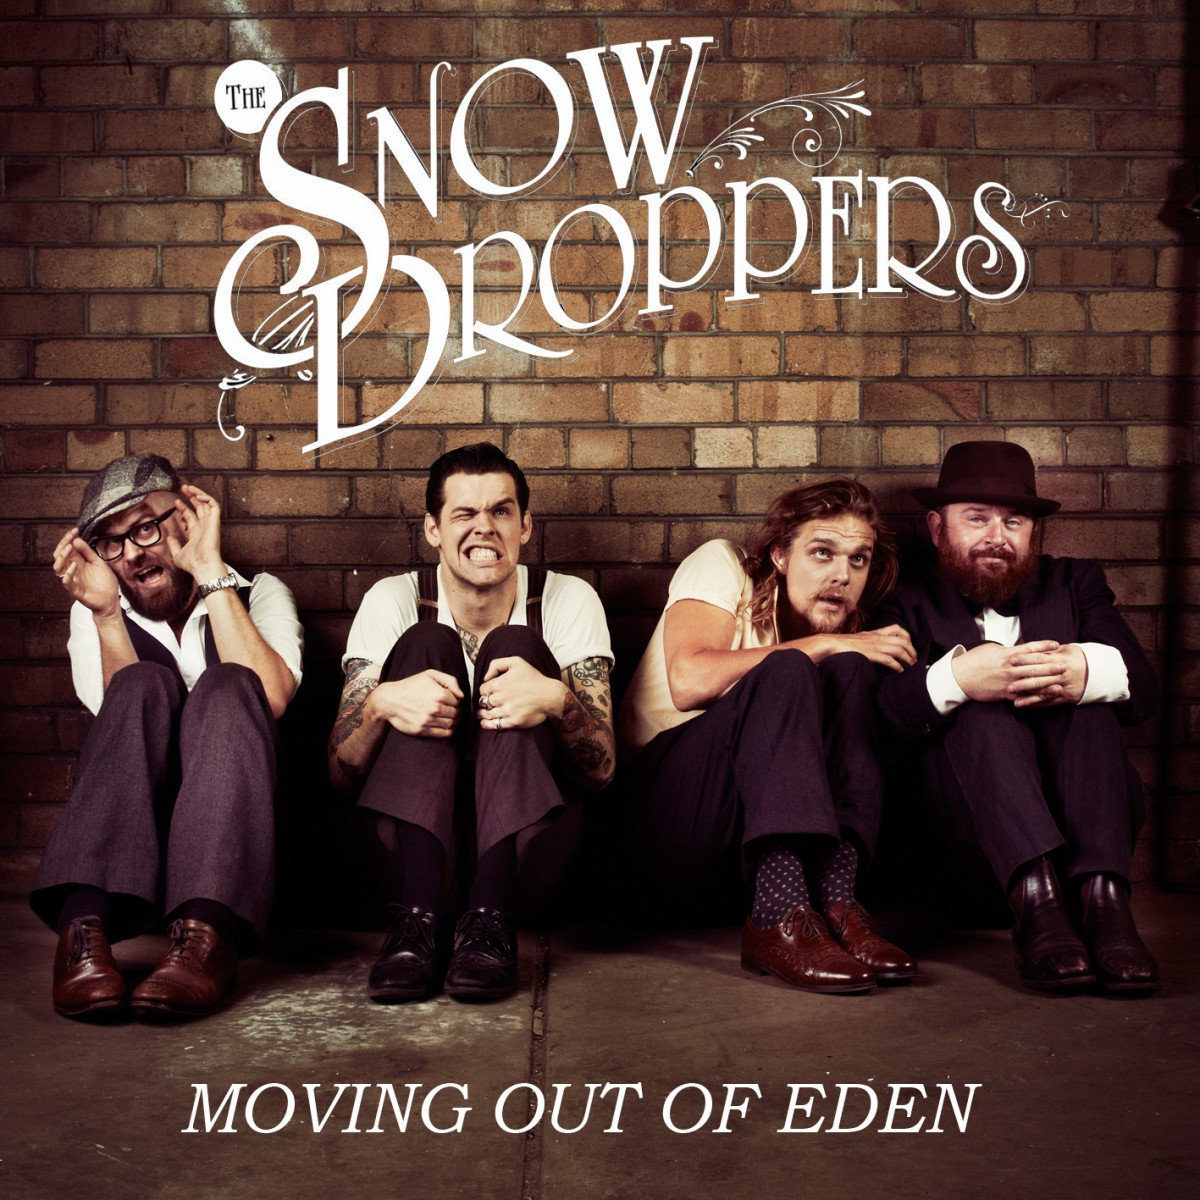 The Snowdroppers - Moving Out Of Eden (single) Mock 1